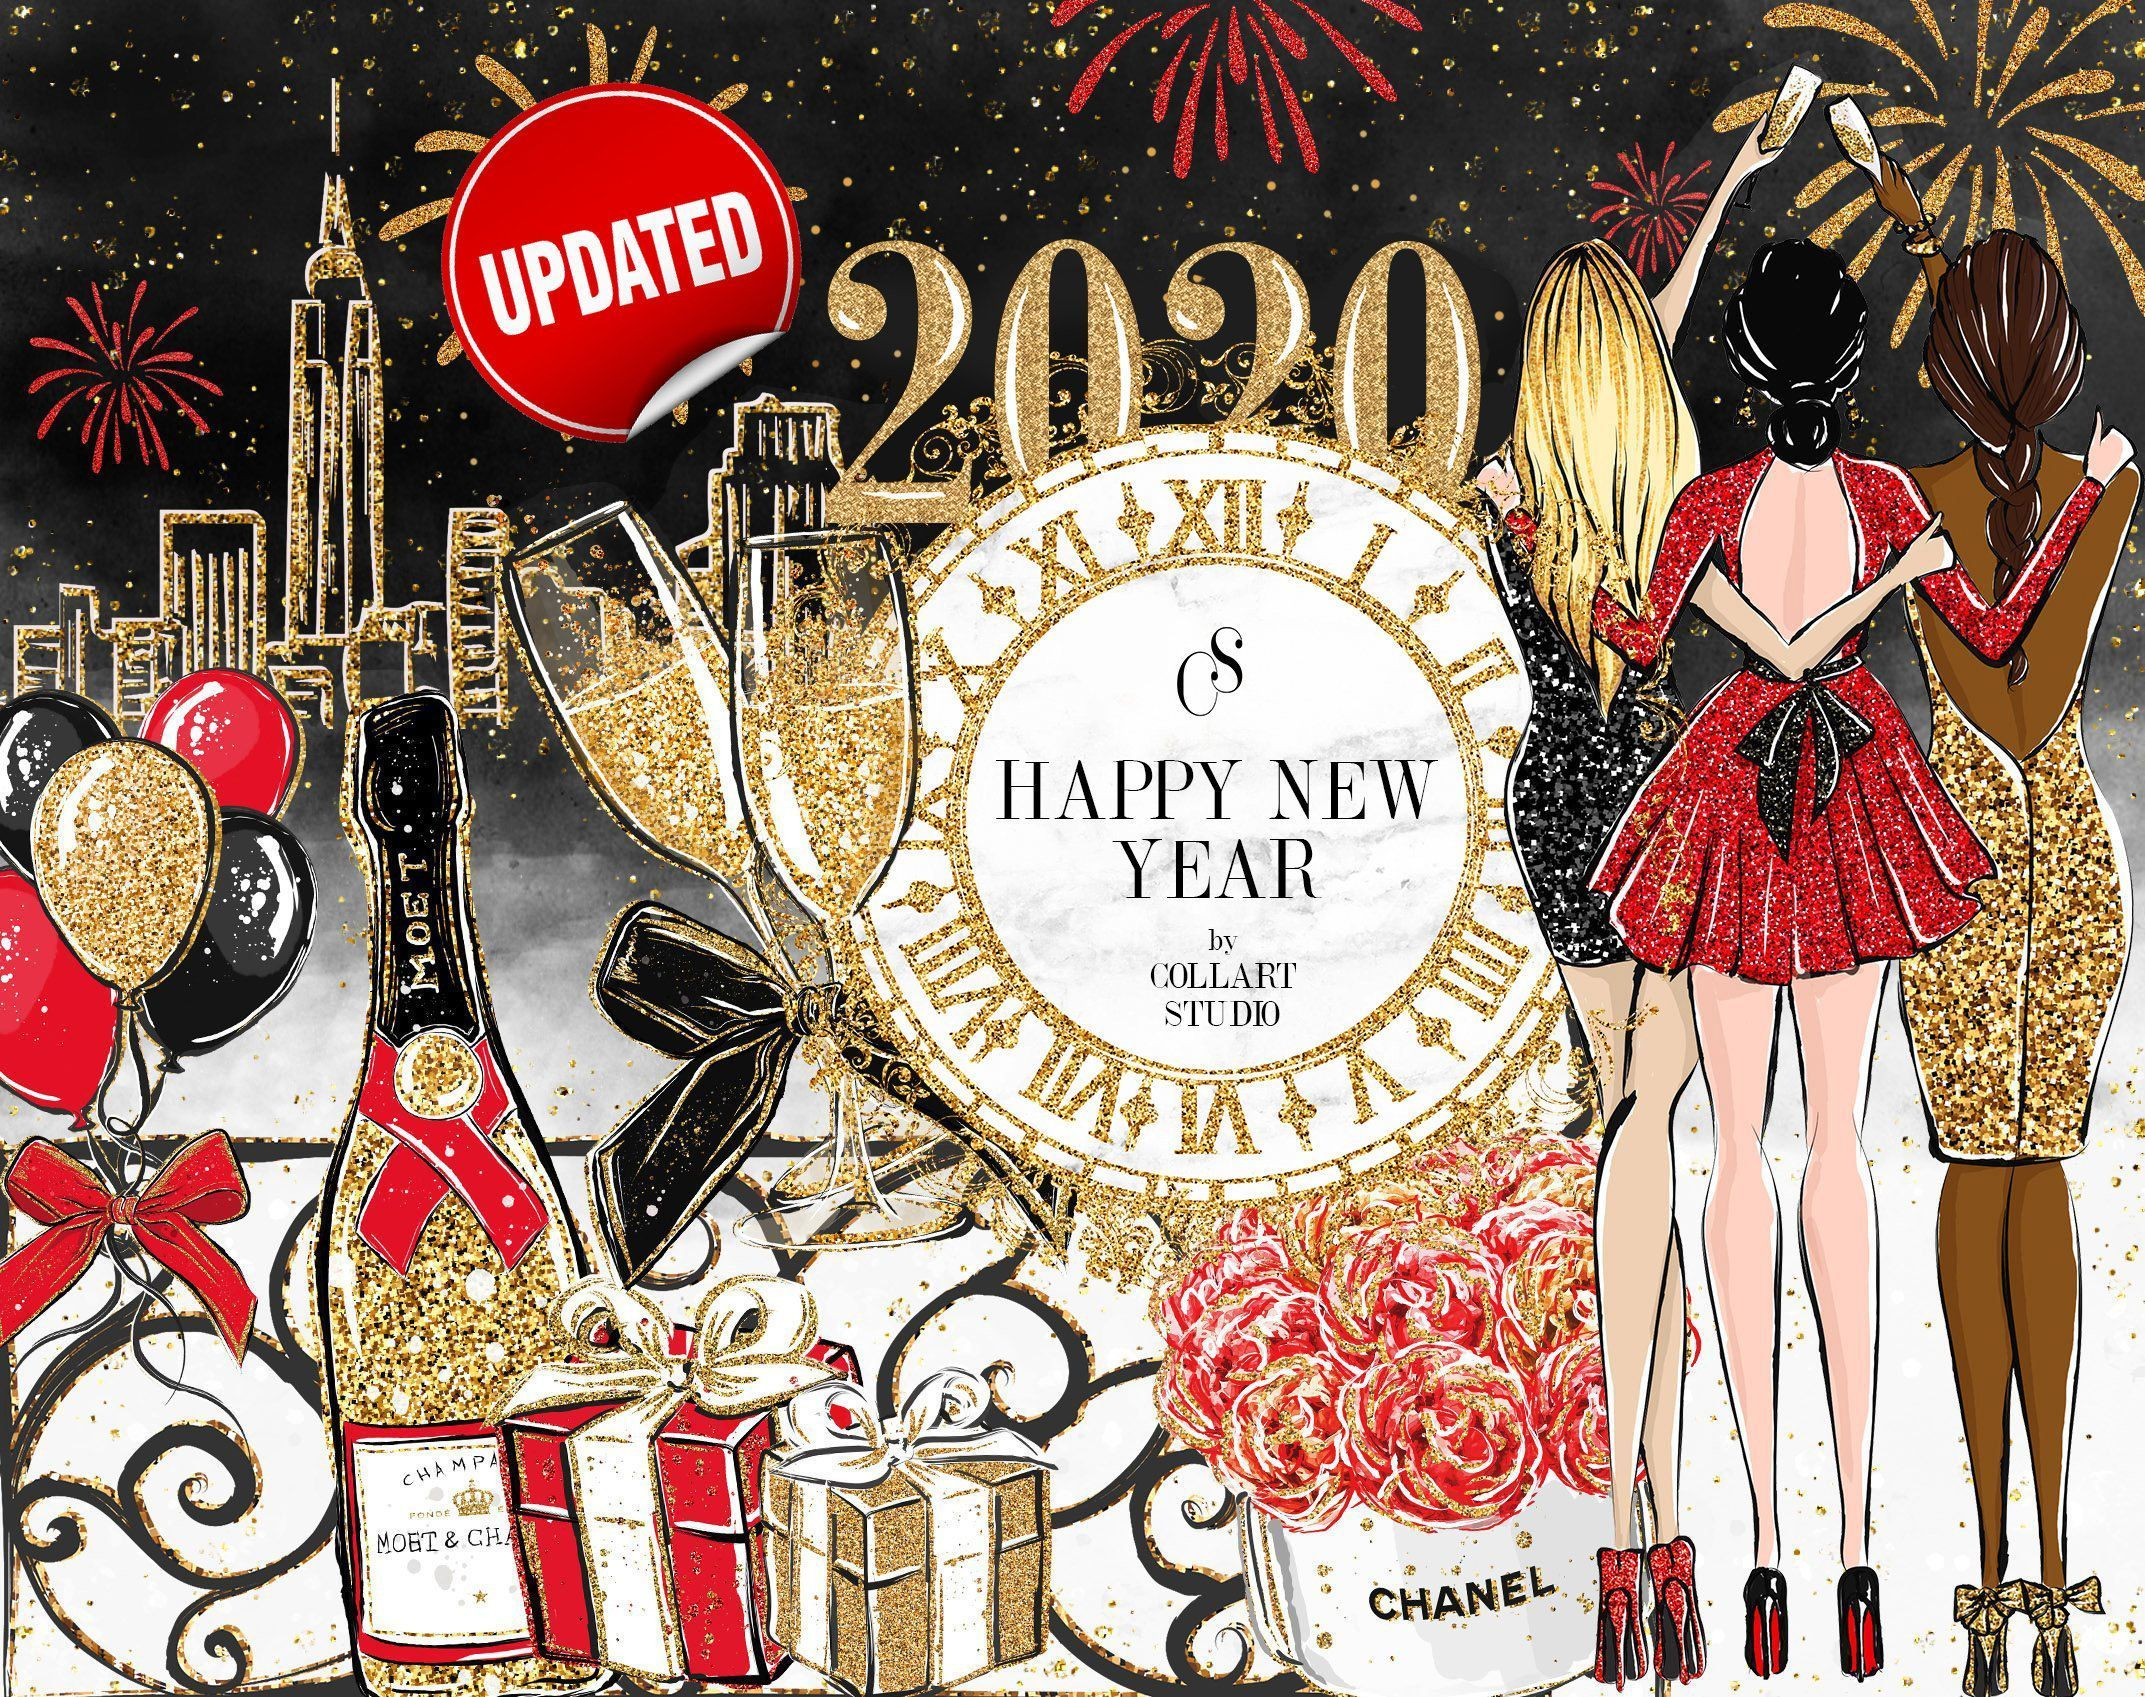 New Year Clip Art Fashion Illustration Party Clipart Celebration Clipart Birt Art Birt Celebr Glitter Planner Fashion Art Illustration Party Clipart